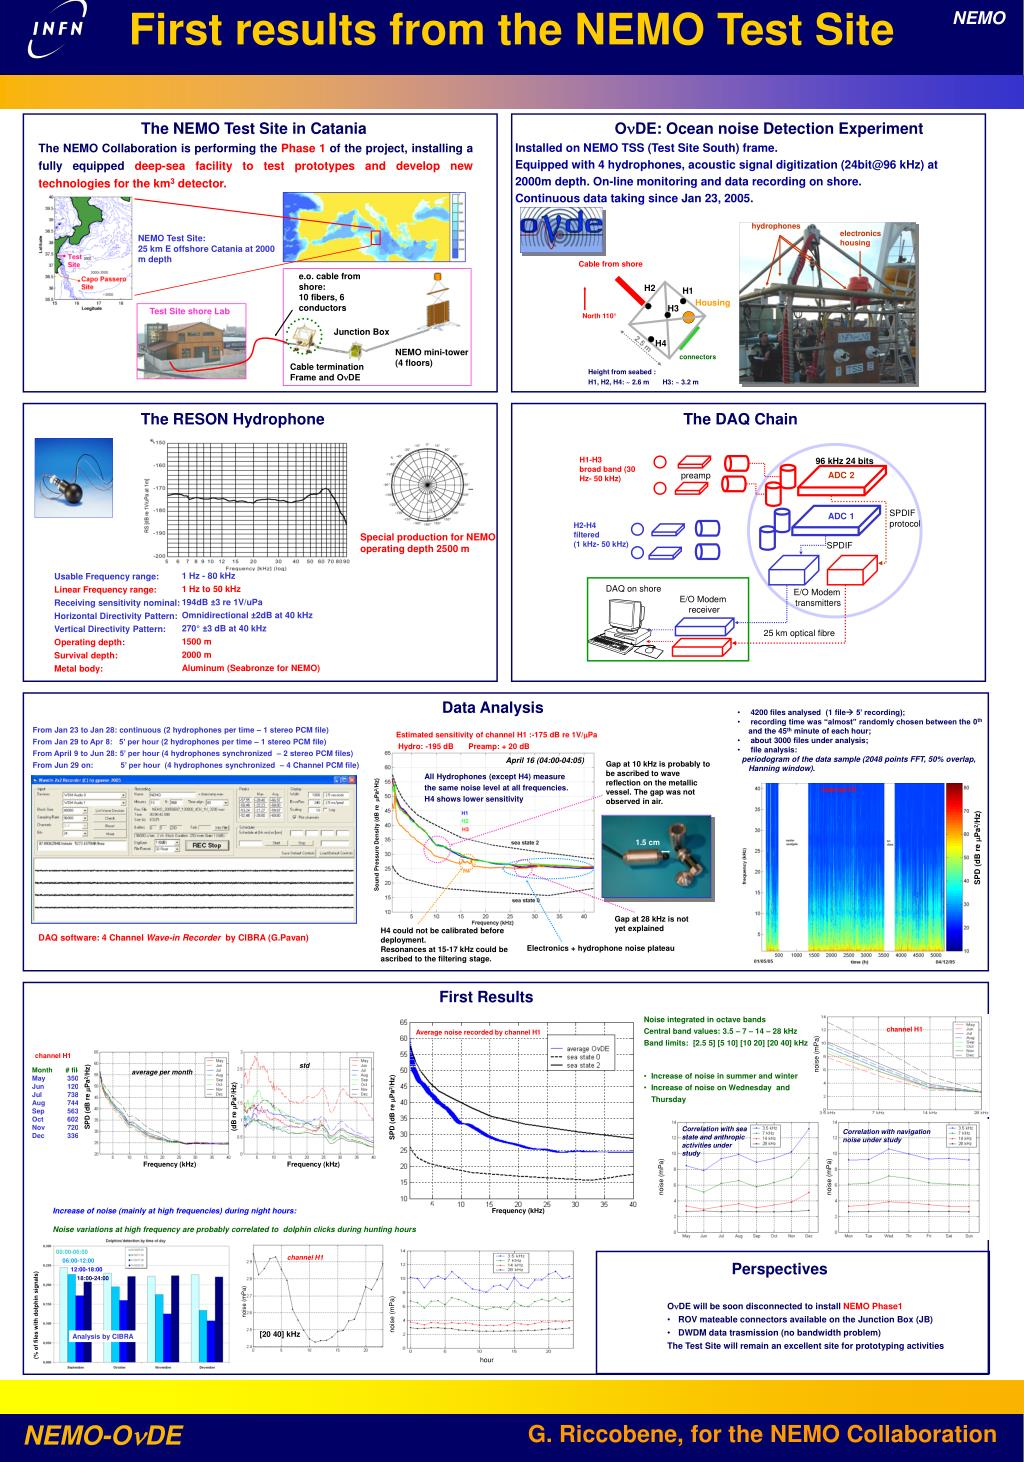 PPT - First r esults from the NEMO Test Site PowerPoint Presentation, free  download - ID:4632833